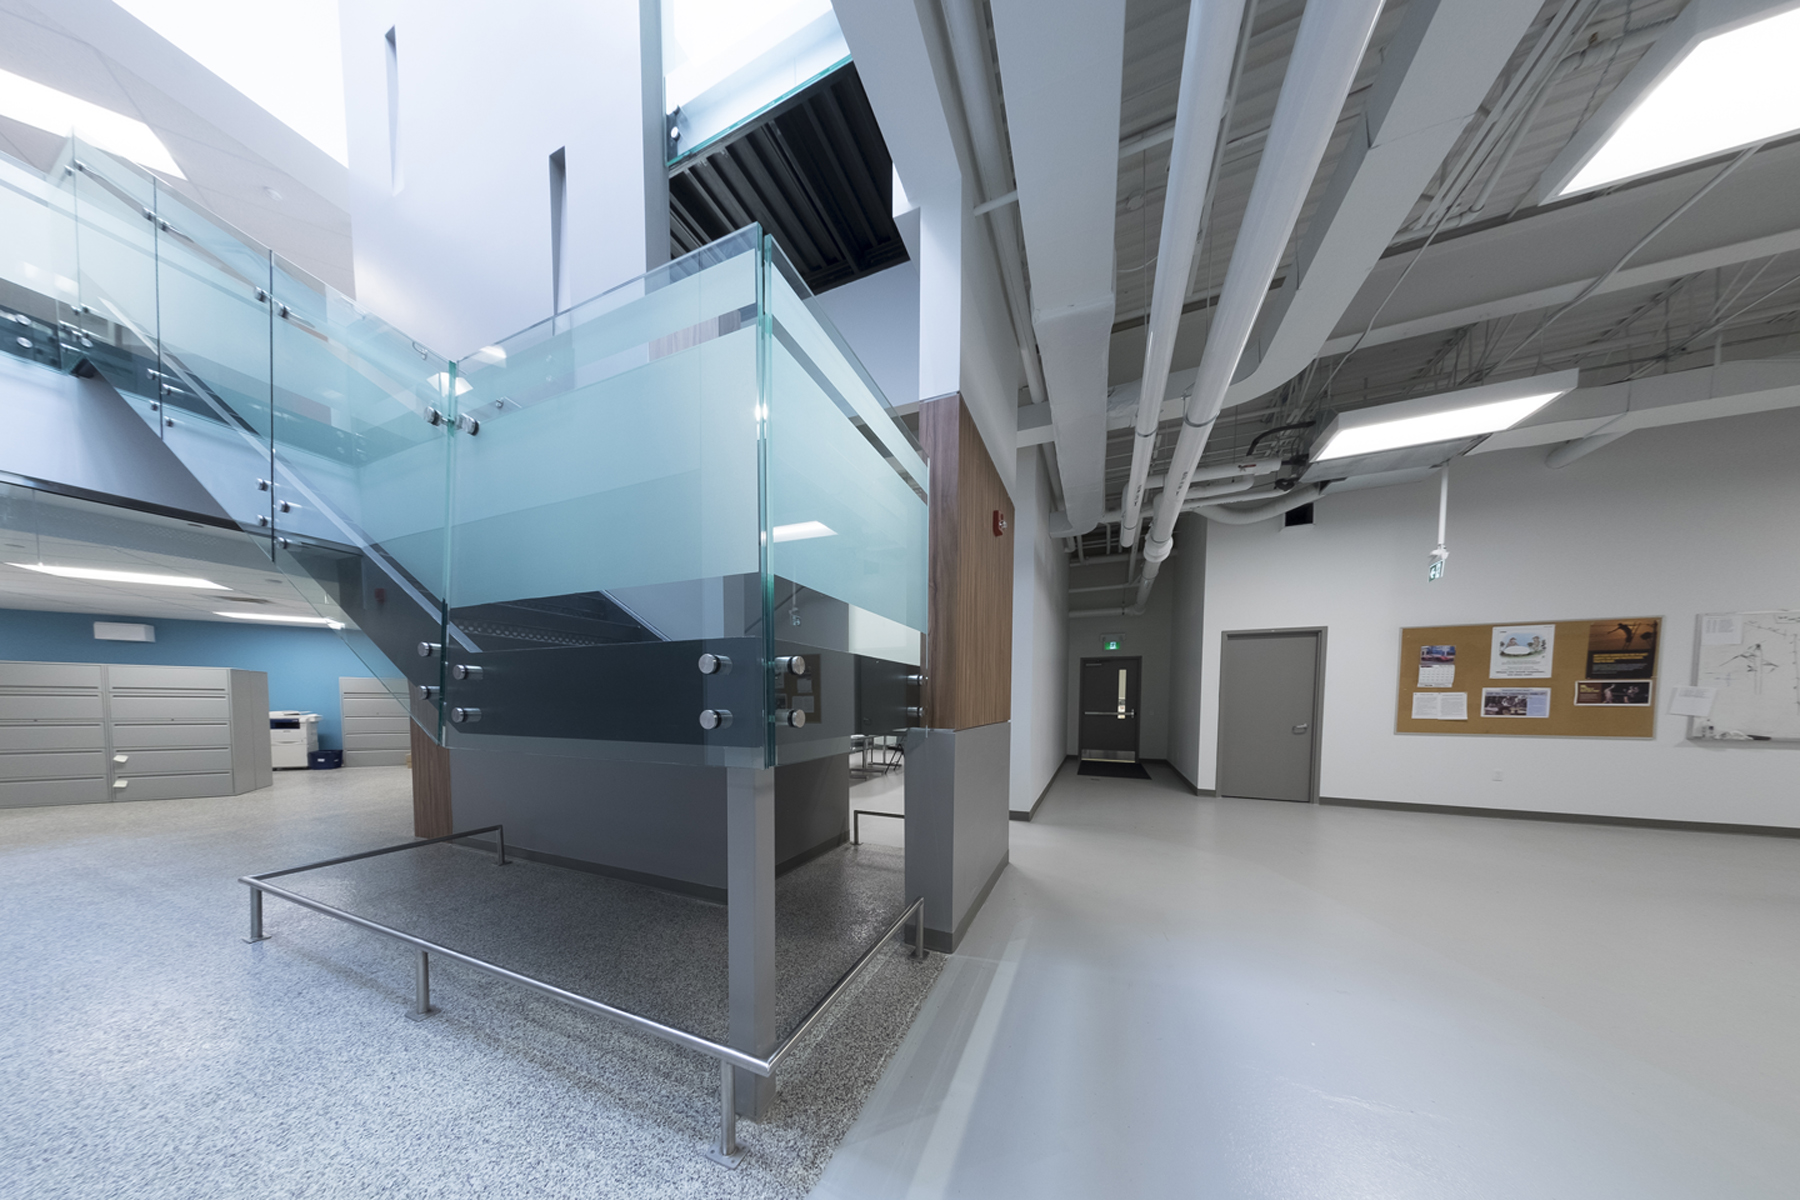 Entrance lobby with exposed staircase with glass guard rail with fastening detail